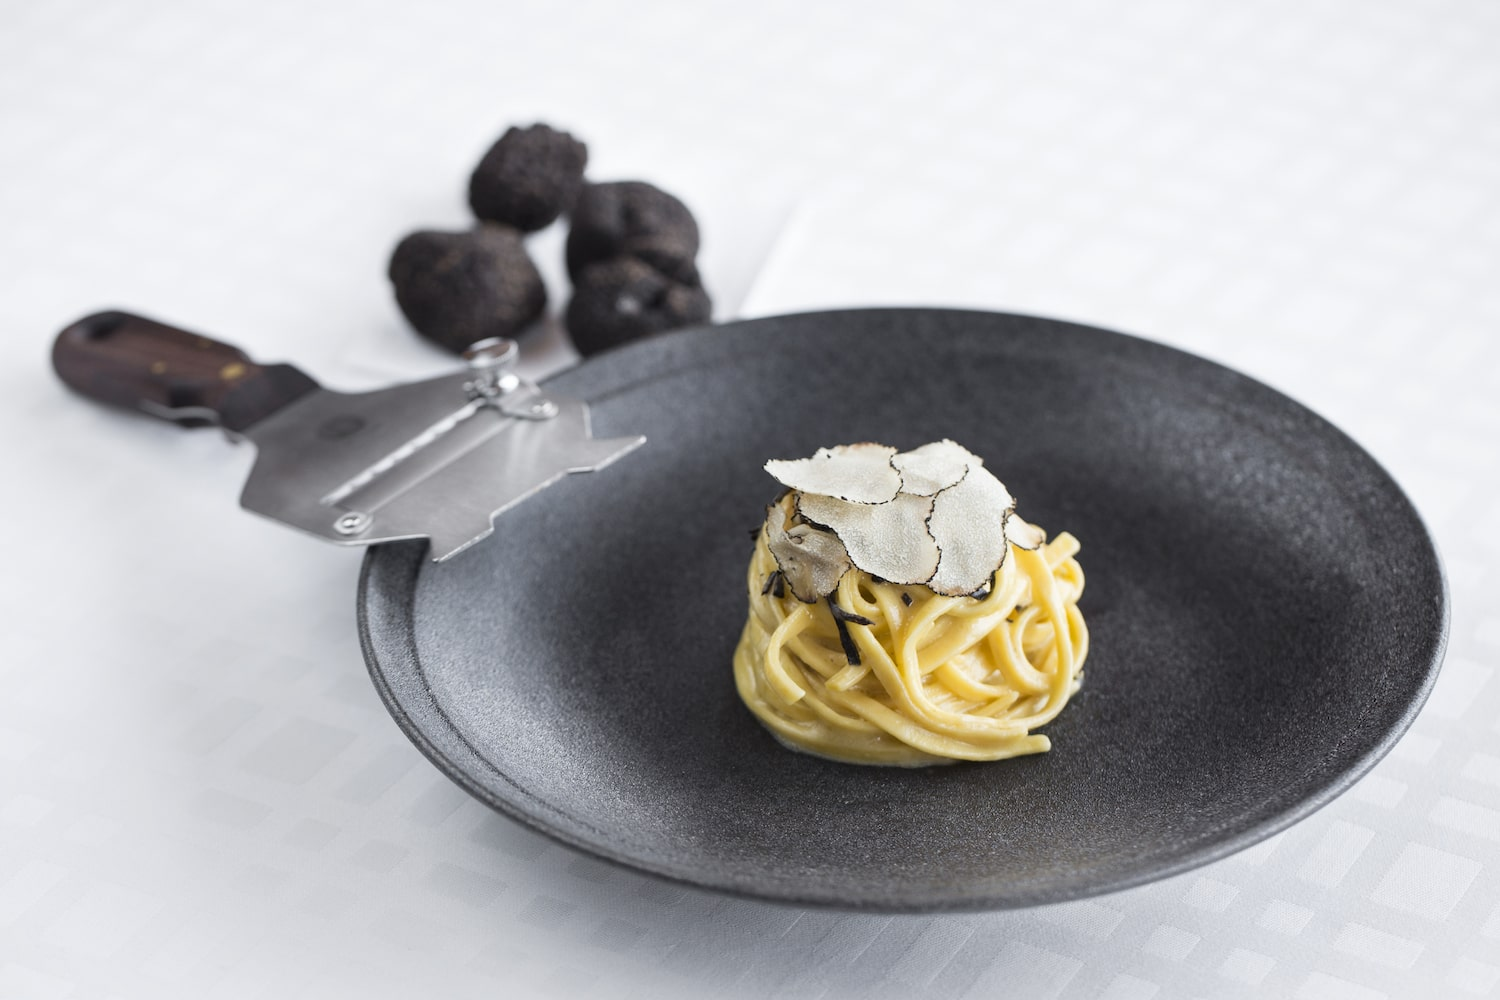 New Eats: The black truffle dishes you'll want to eat ...